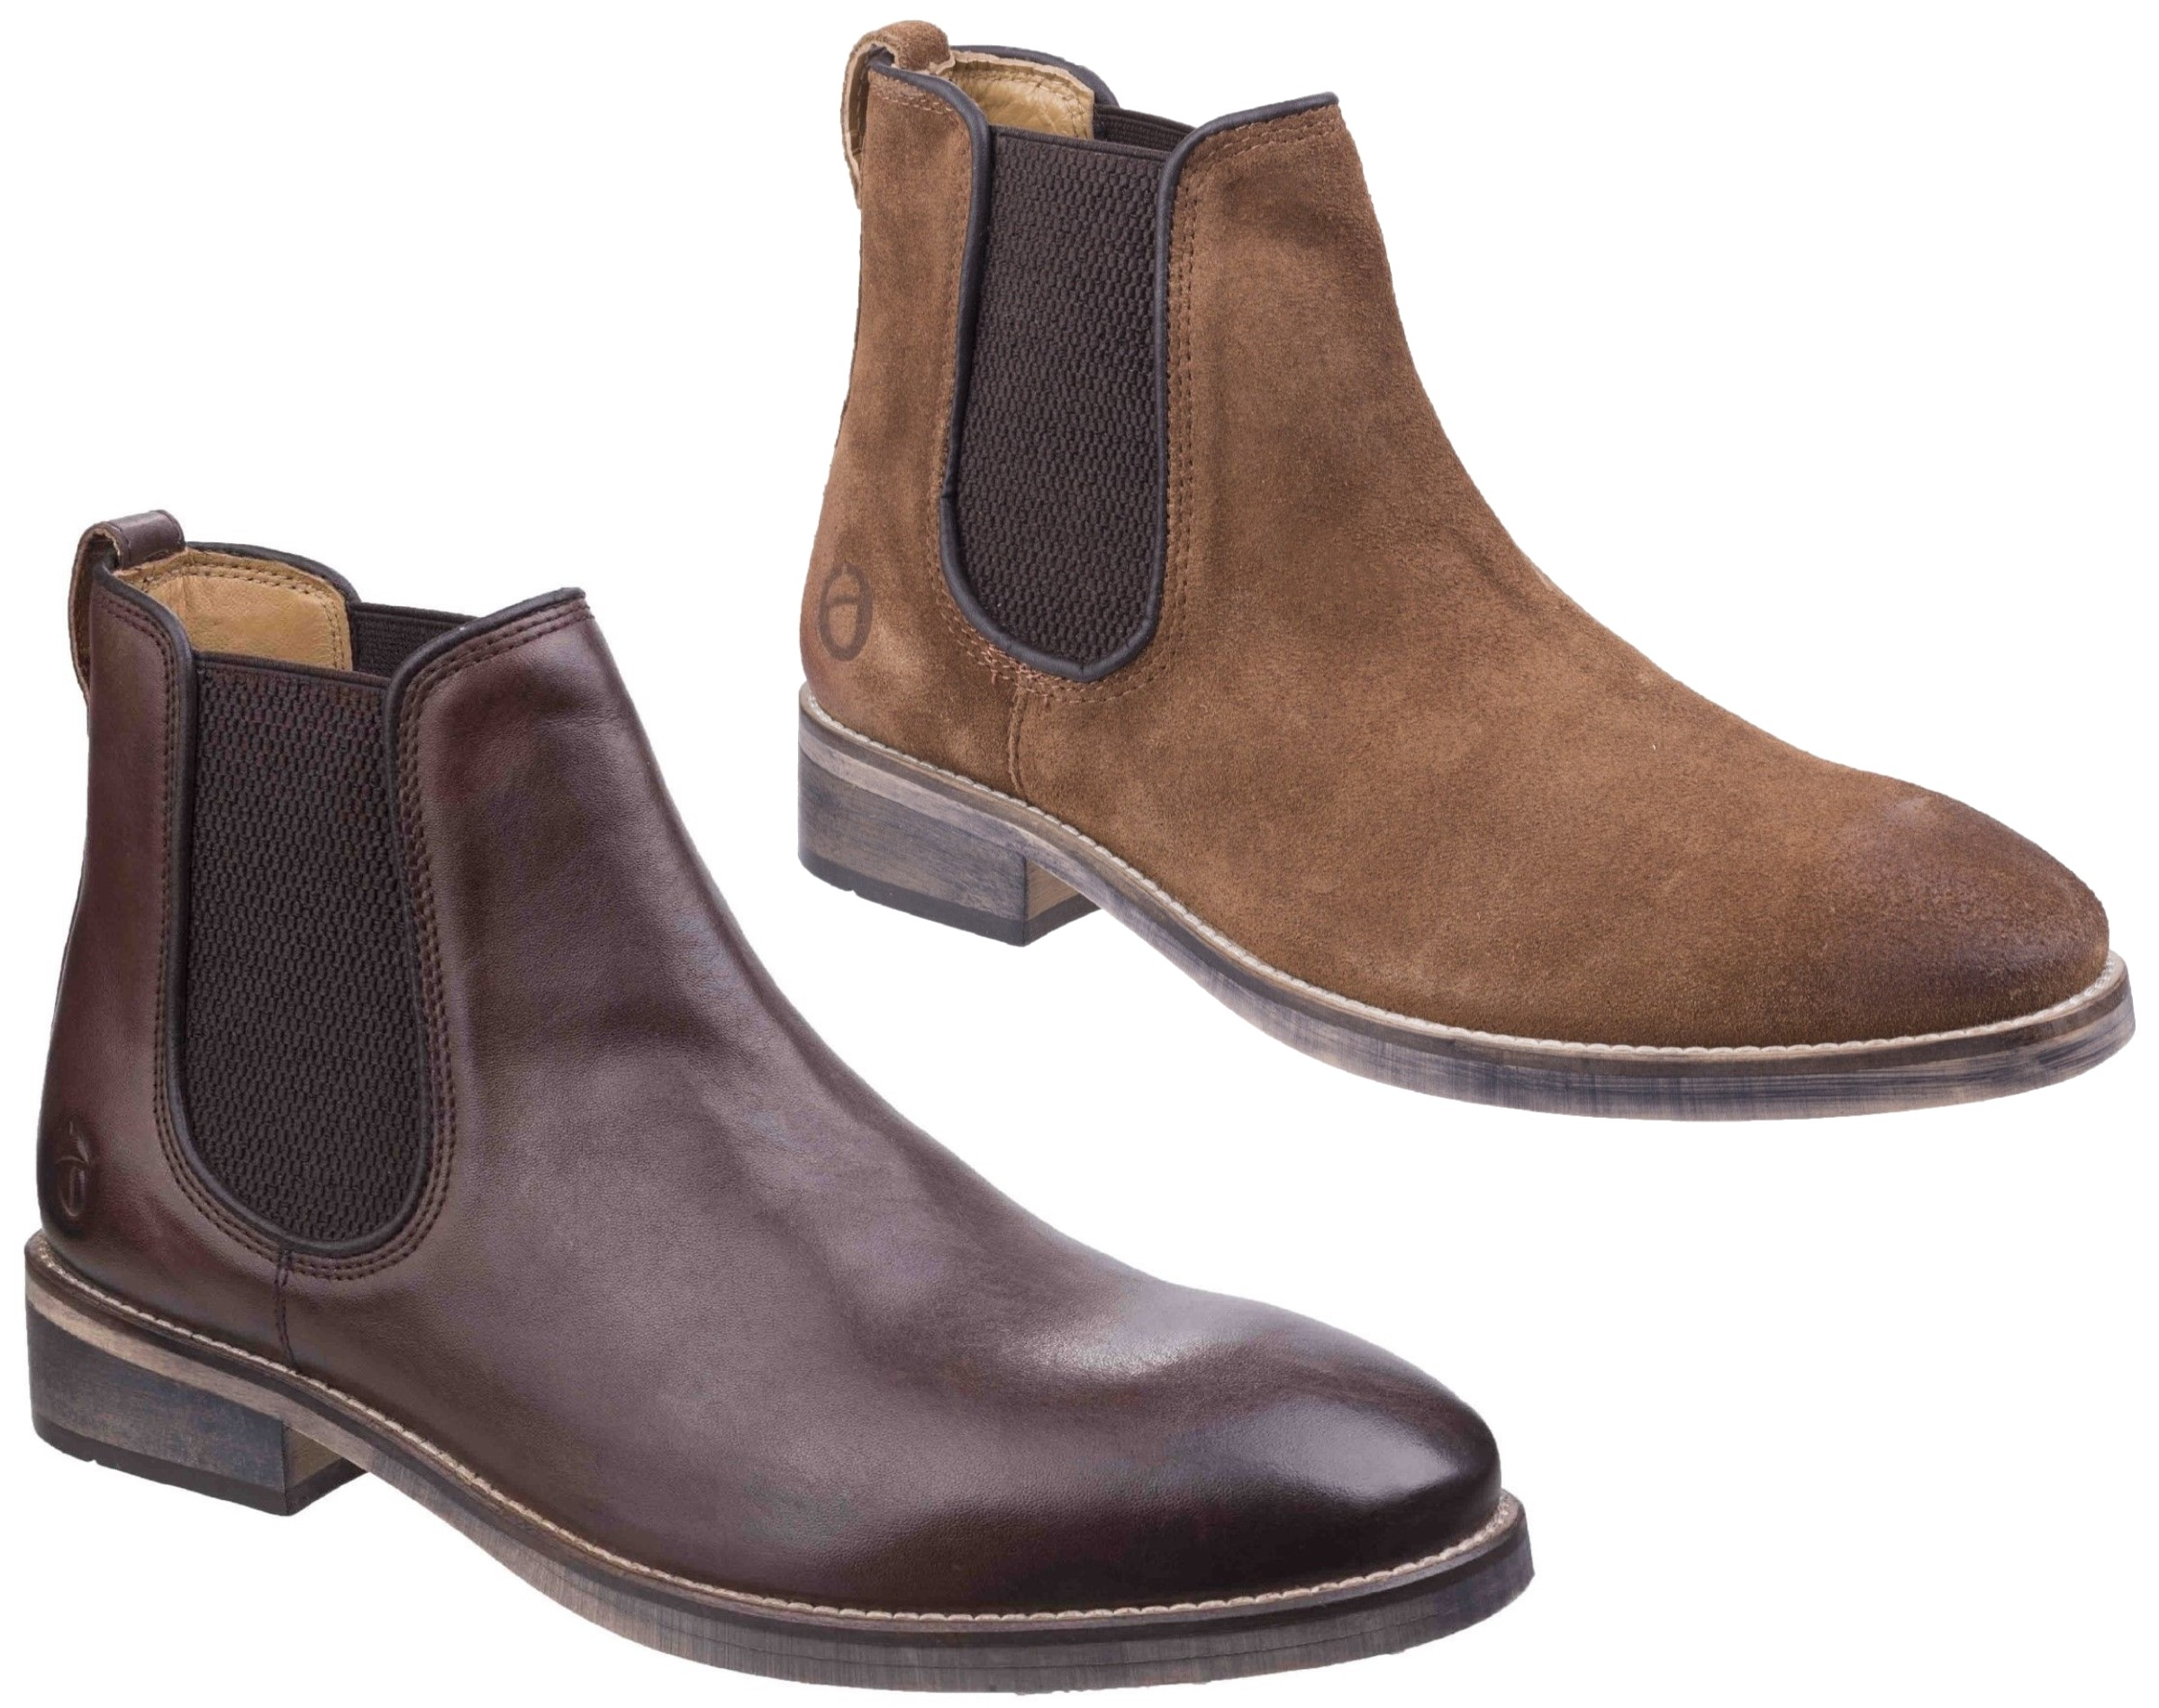 Cotswold Corsham dark brown or camel pull on leather dealer ankle boot